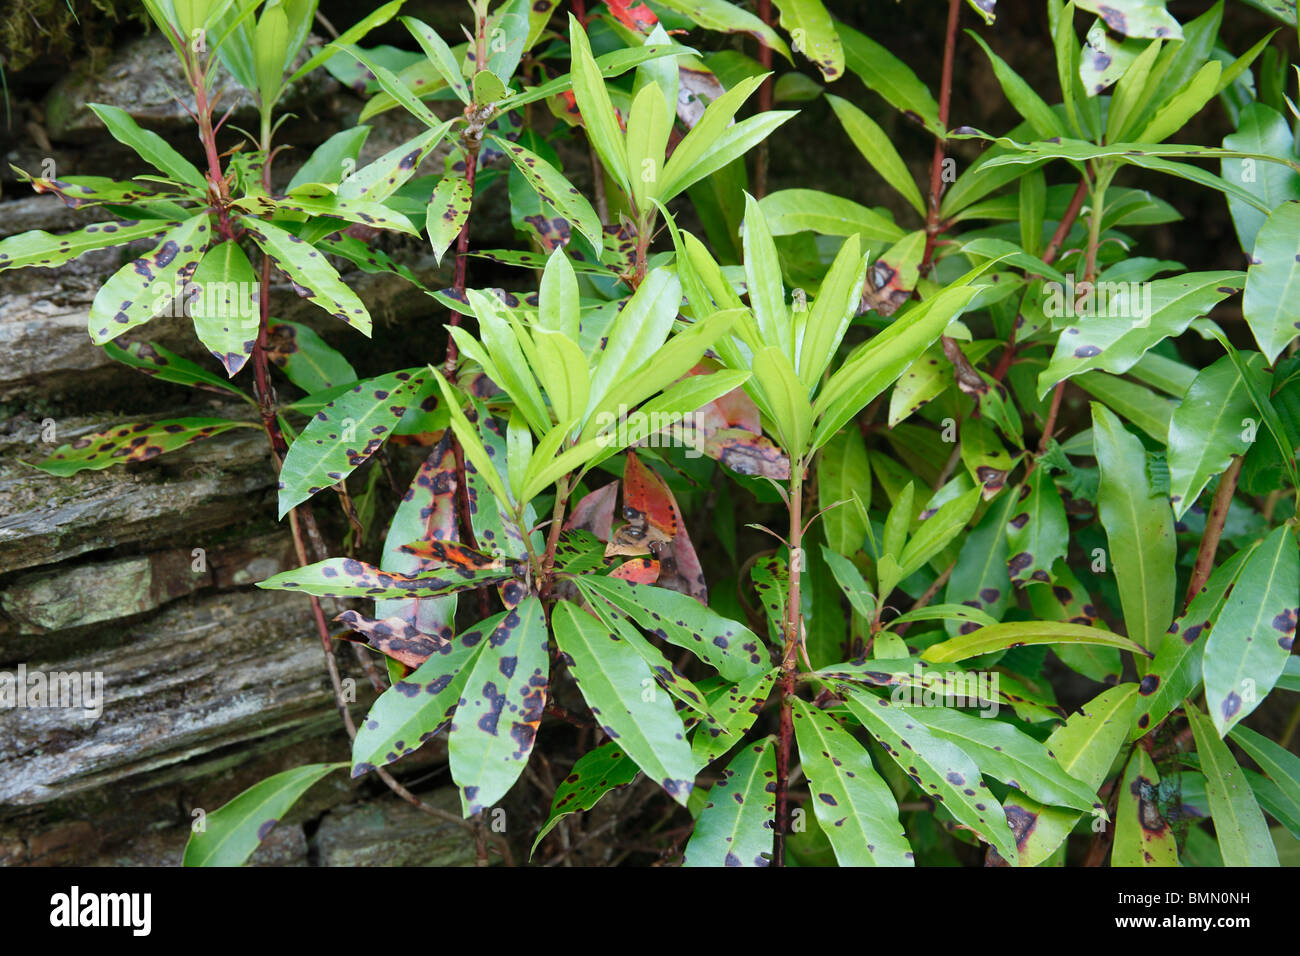 Rhododendron leaf spot (Septoria azaleae) plant with infected leaves - Stock Image